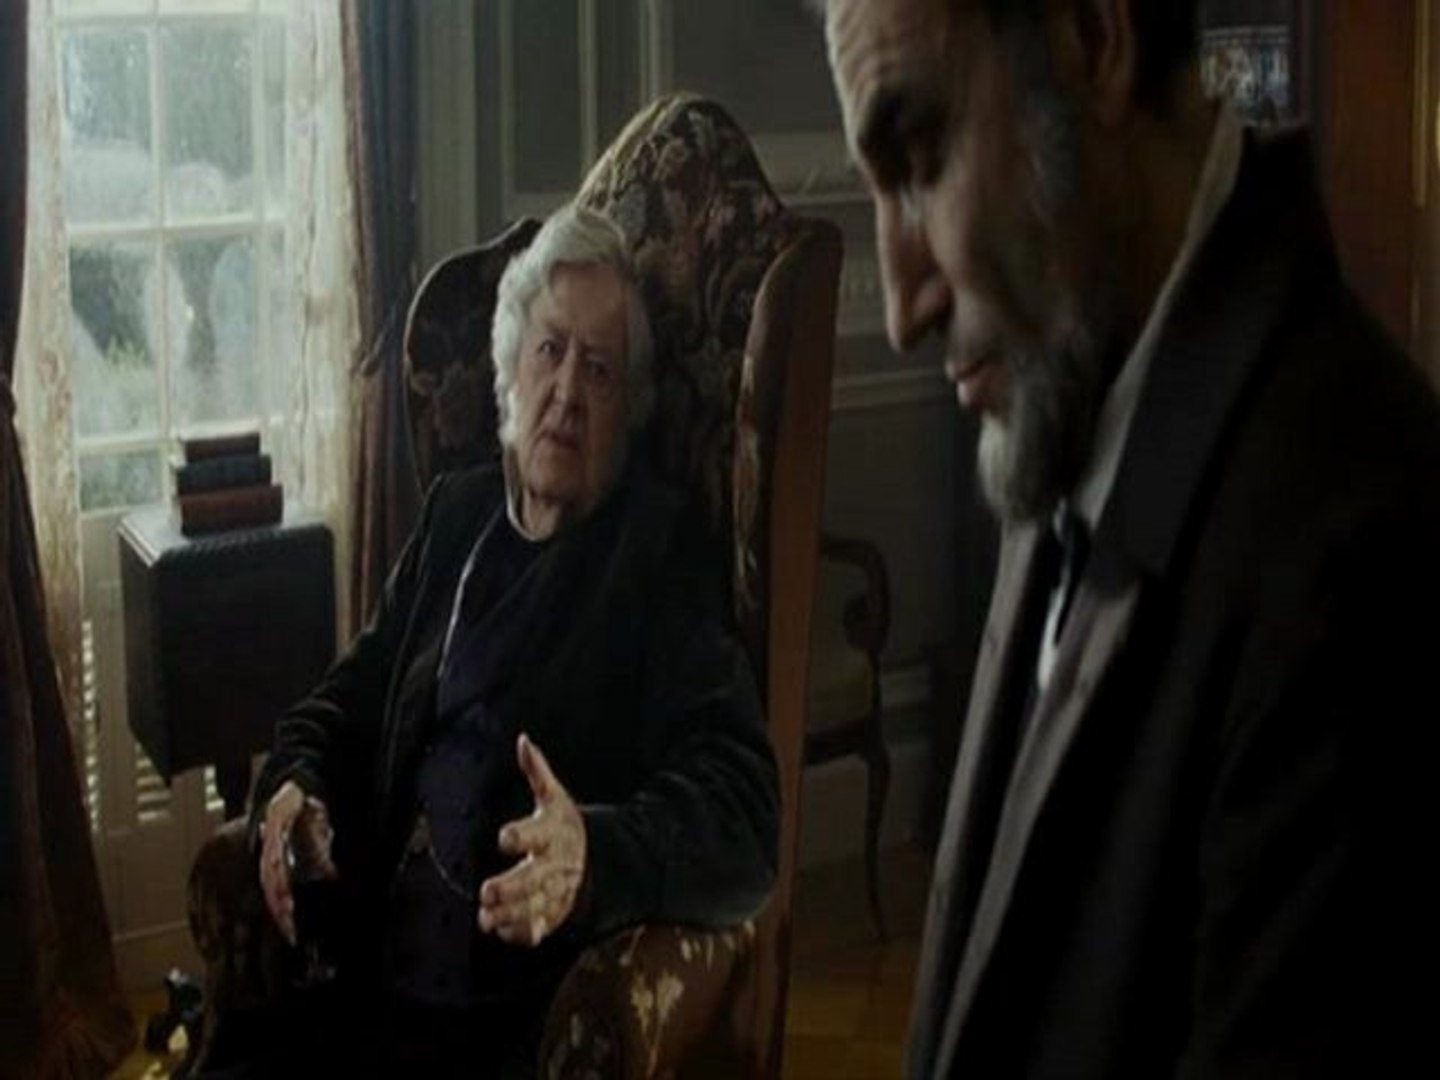 Lincoln Complete Movie (2012) Full Movie Daniel Day-Lewis Movie HD